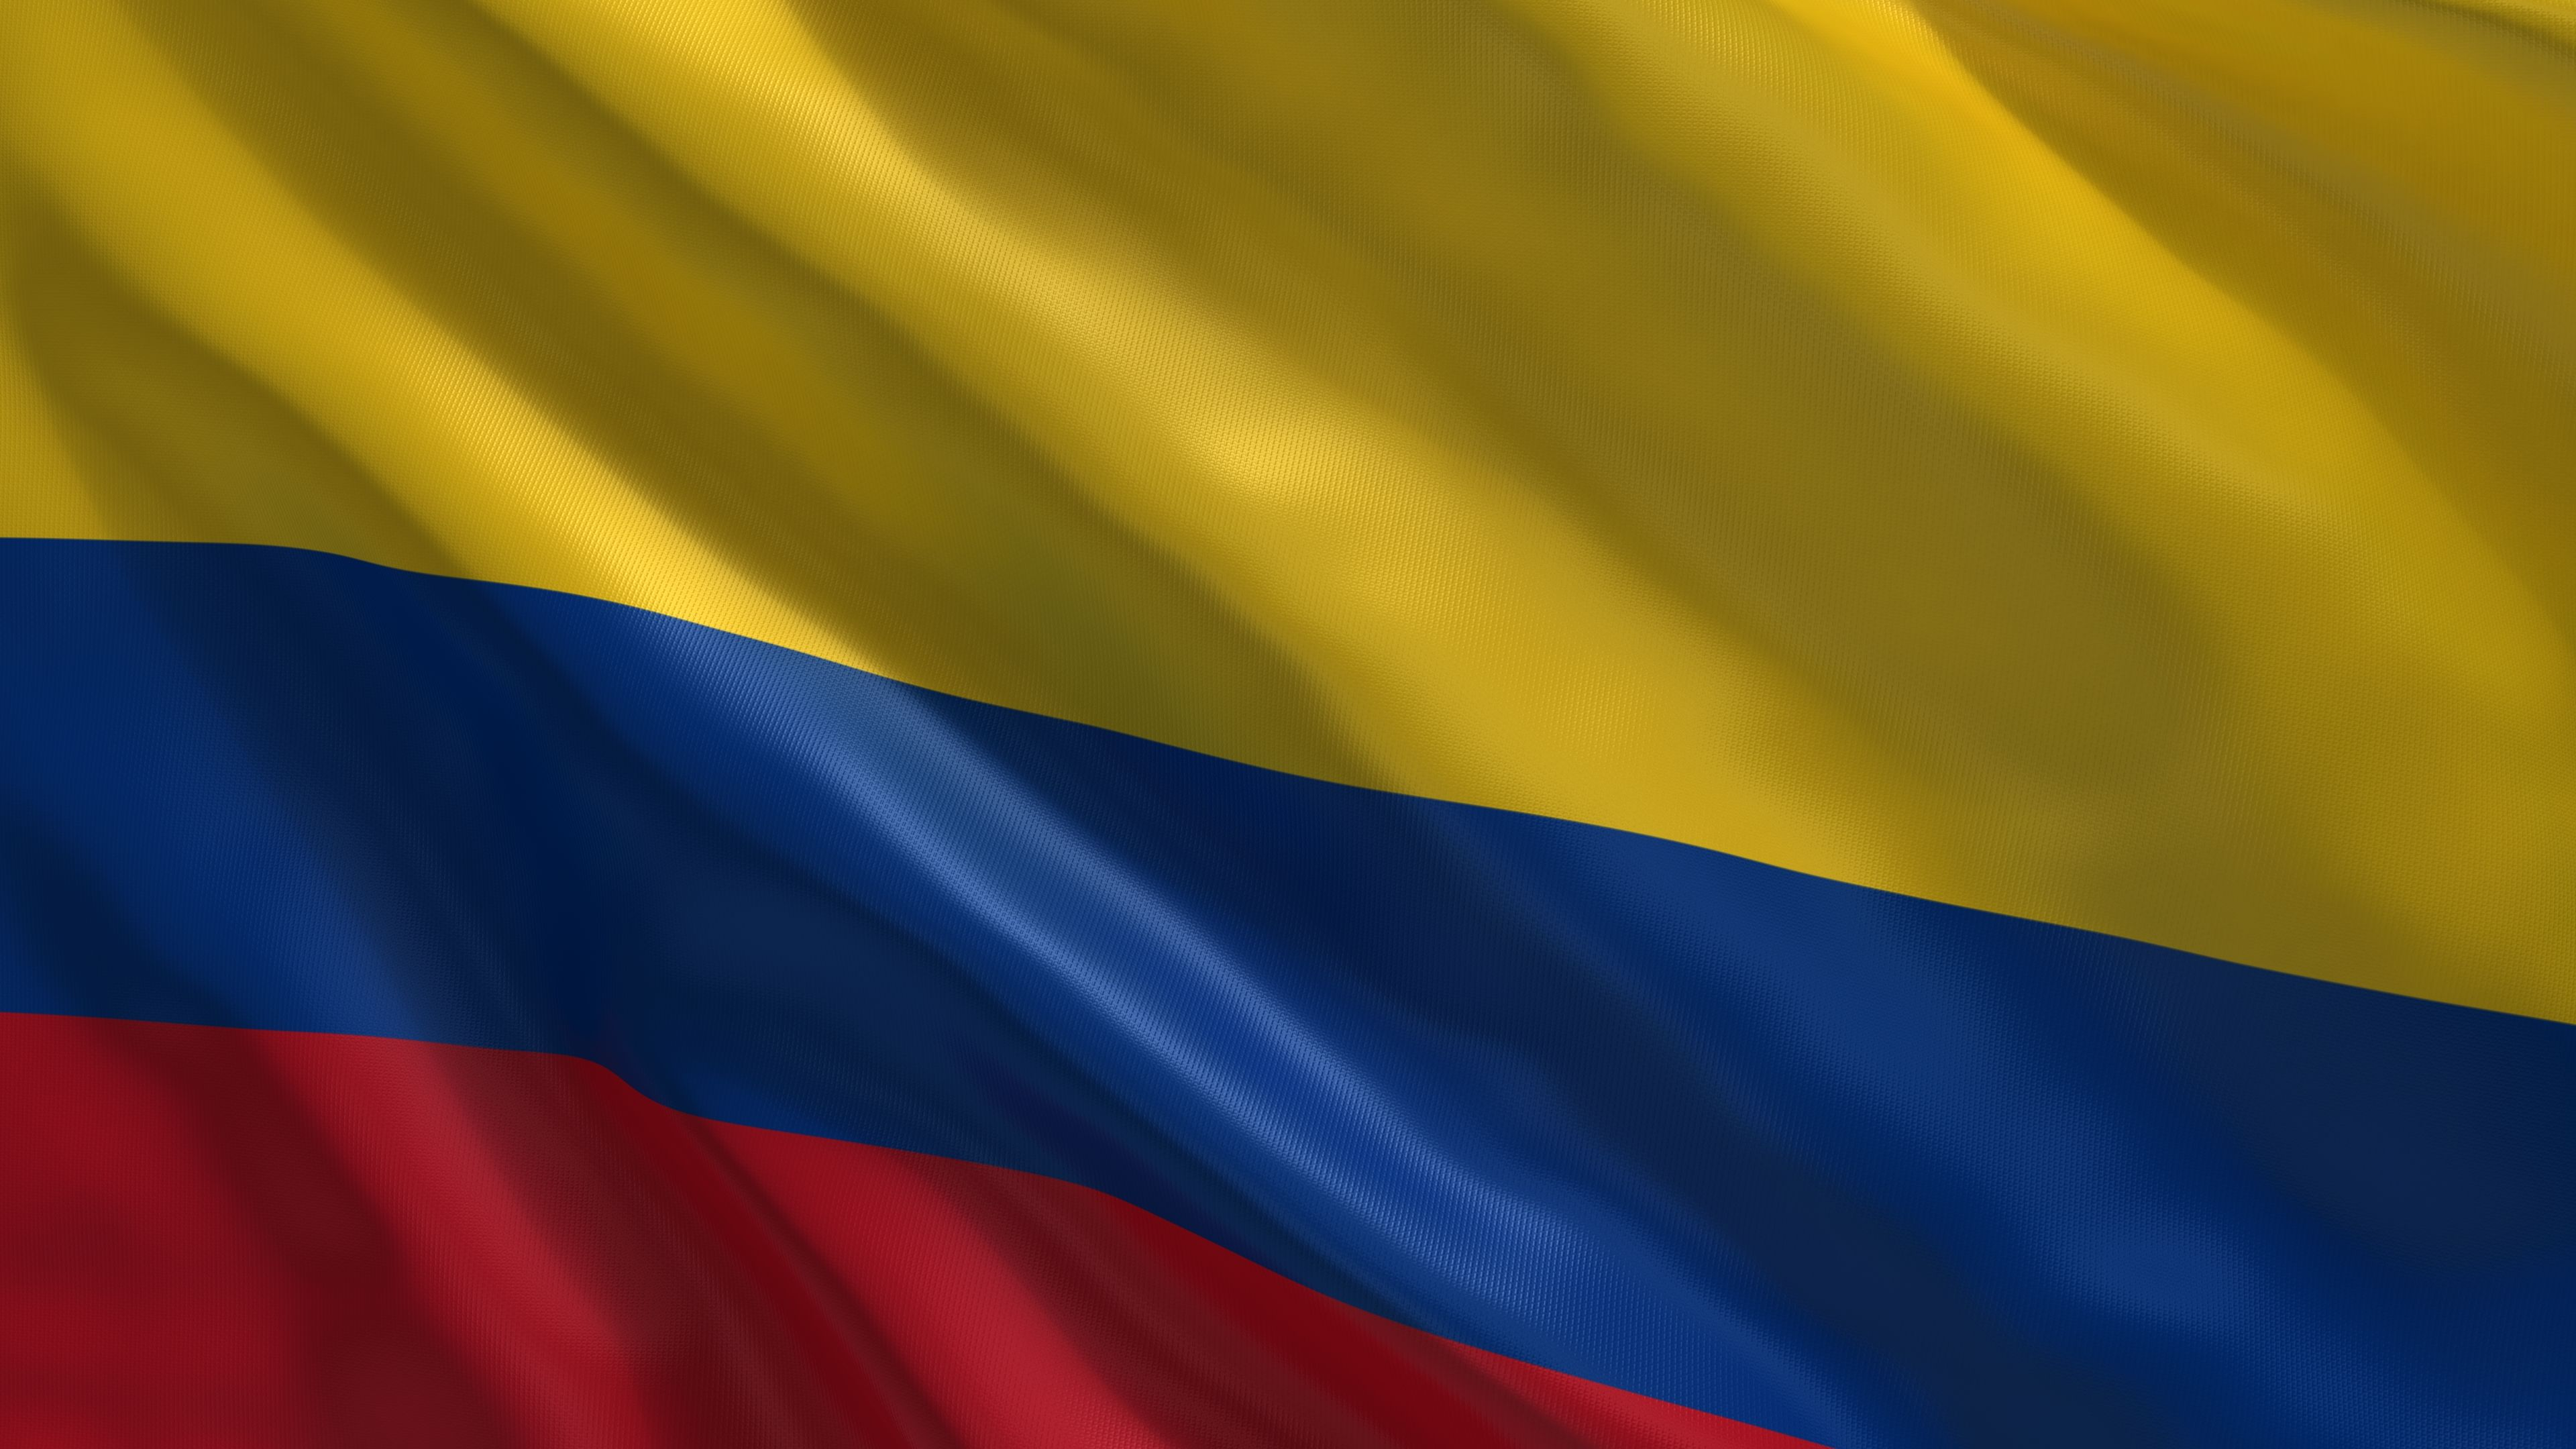 Bandera, colombia, flag, bandera colombia, colombia flag, flags ...